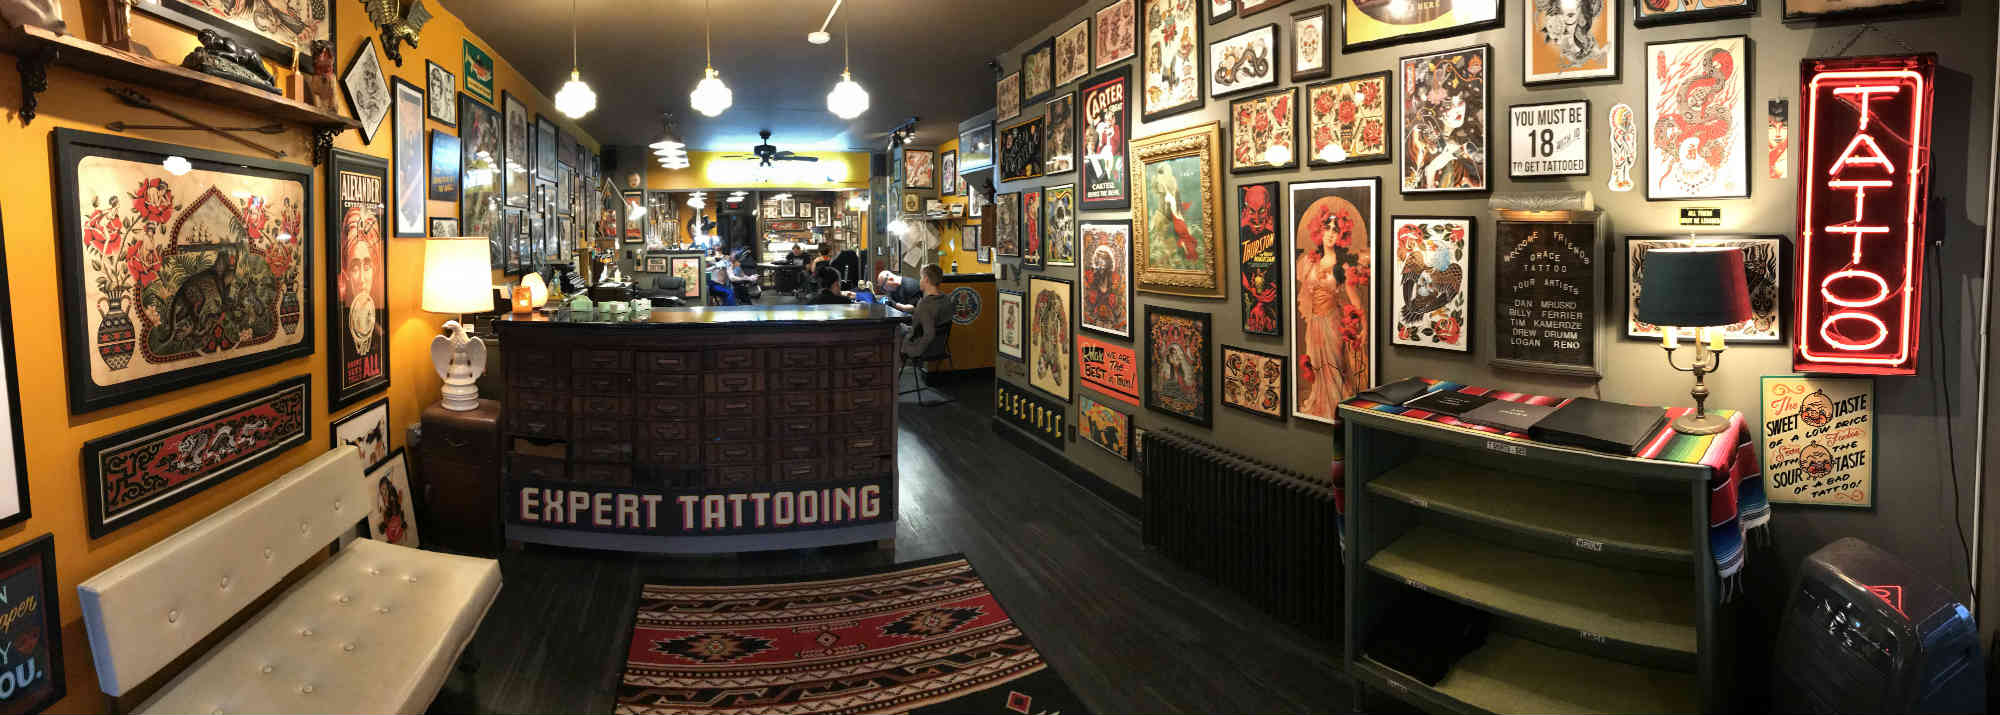 Tattoo shops in lancaster pa